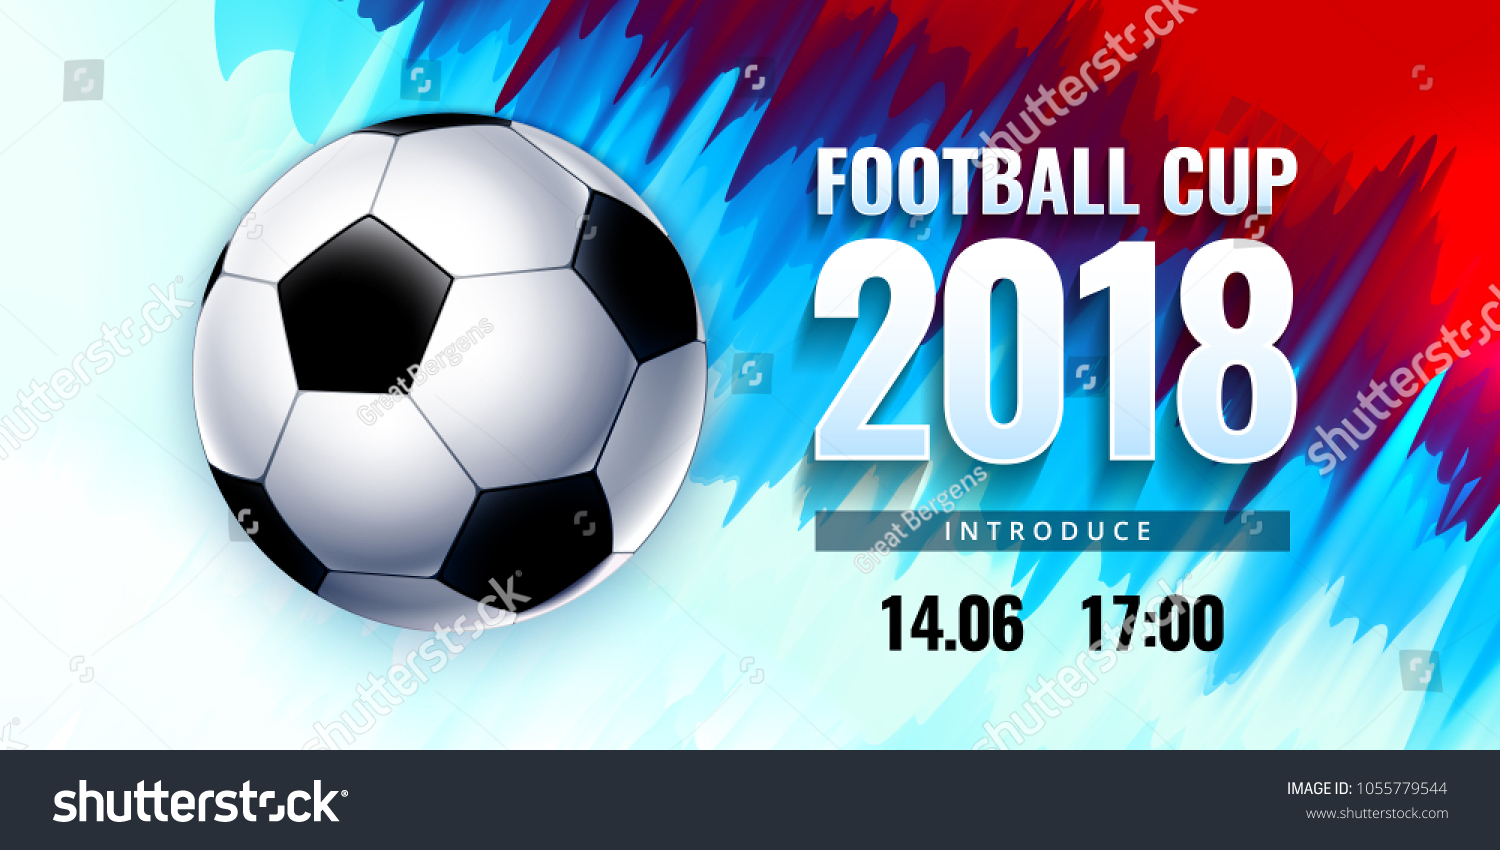 Football World Cup Russia Wallpaper Color Stock Vector Royalty Free